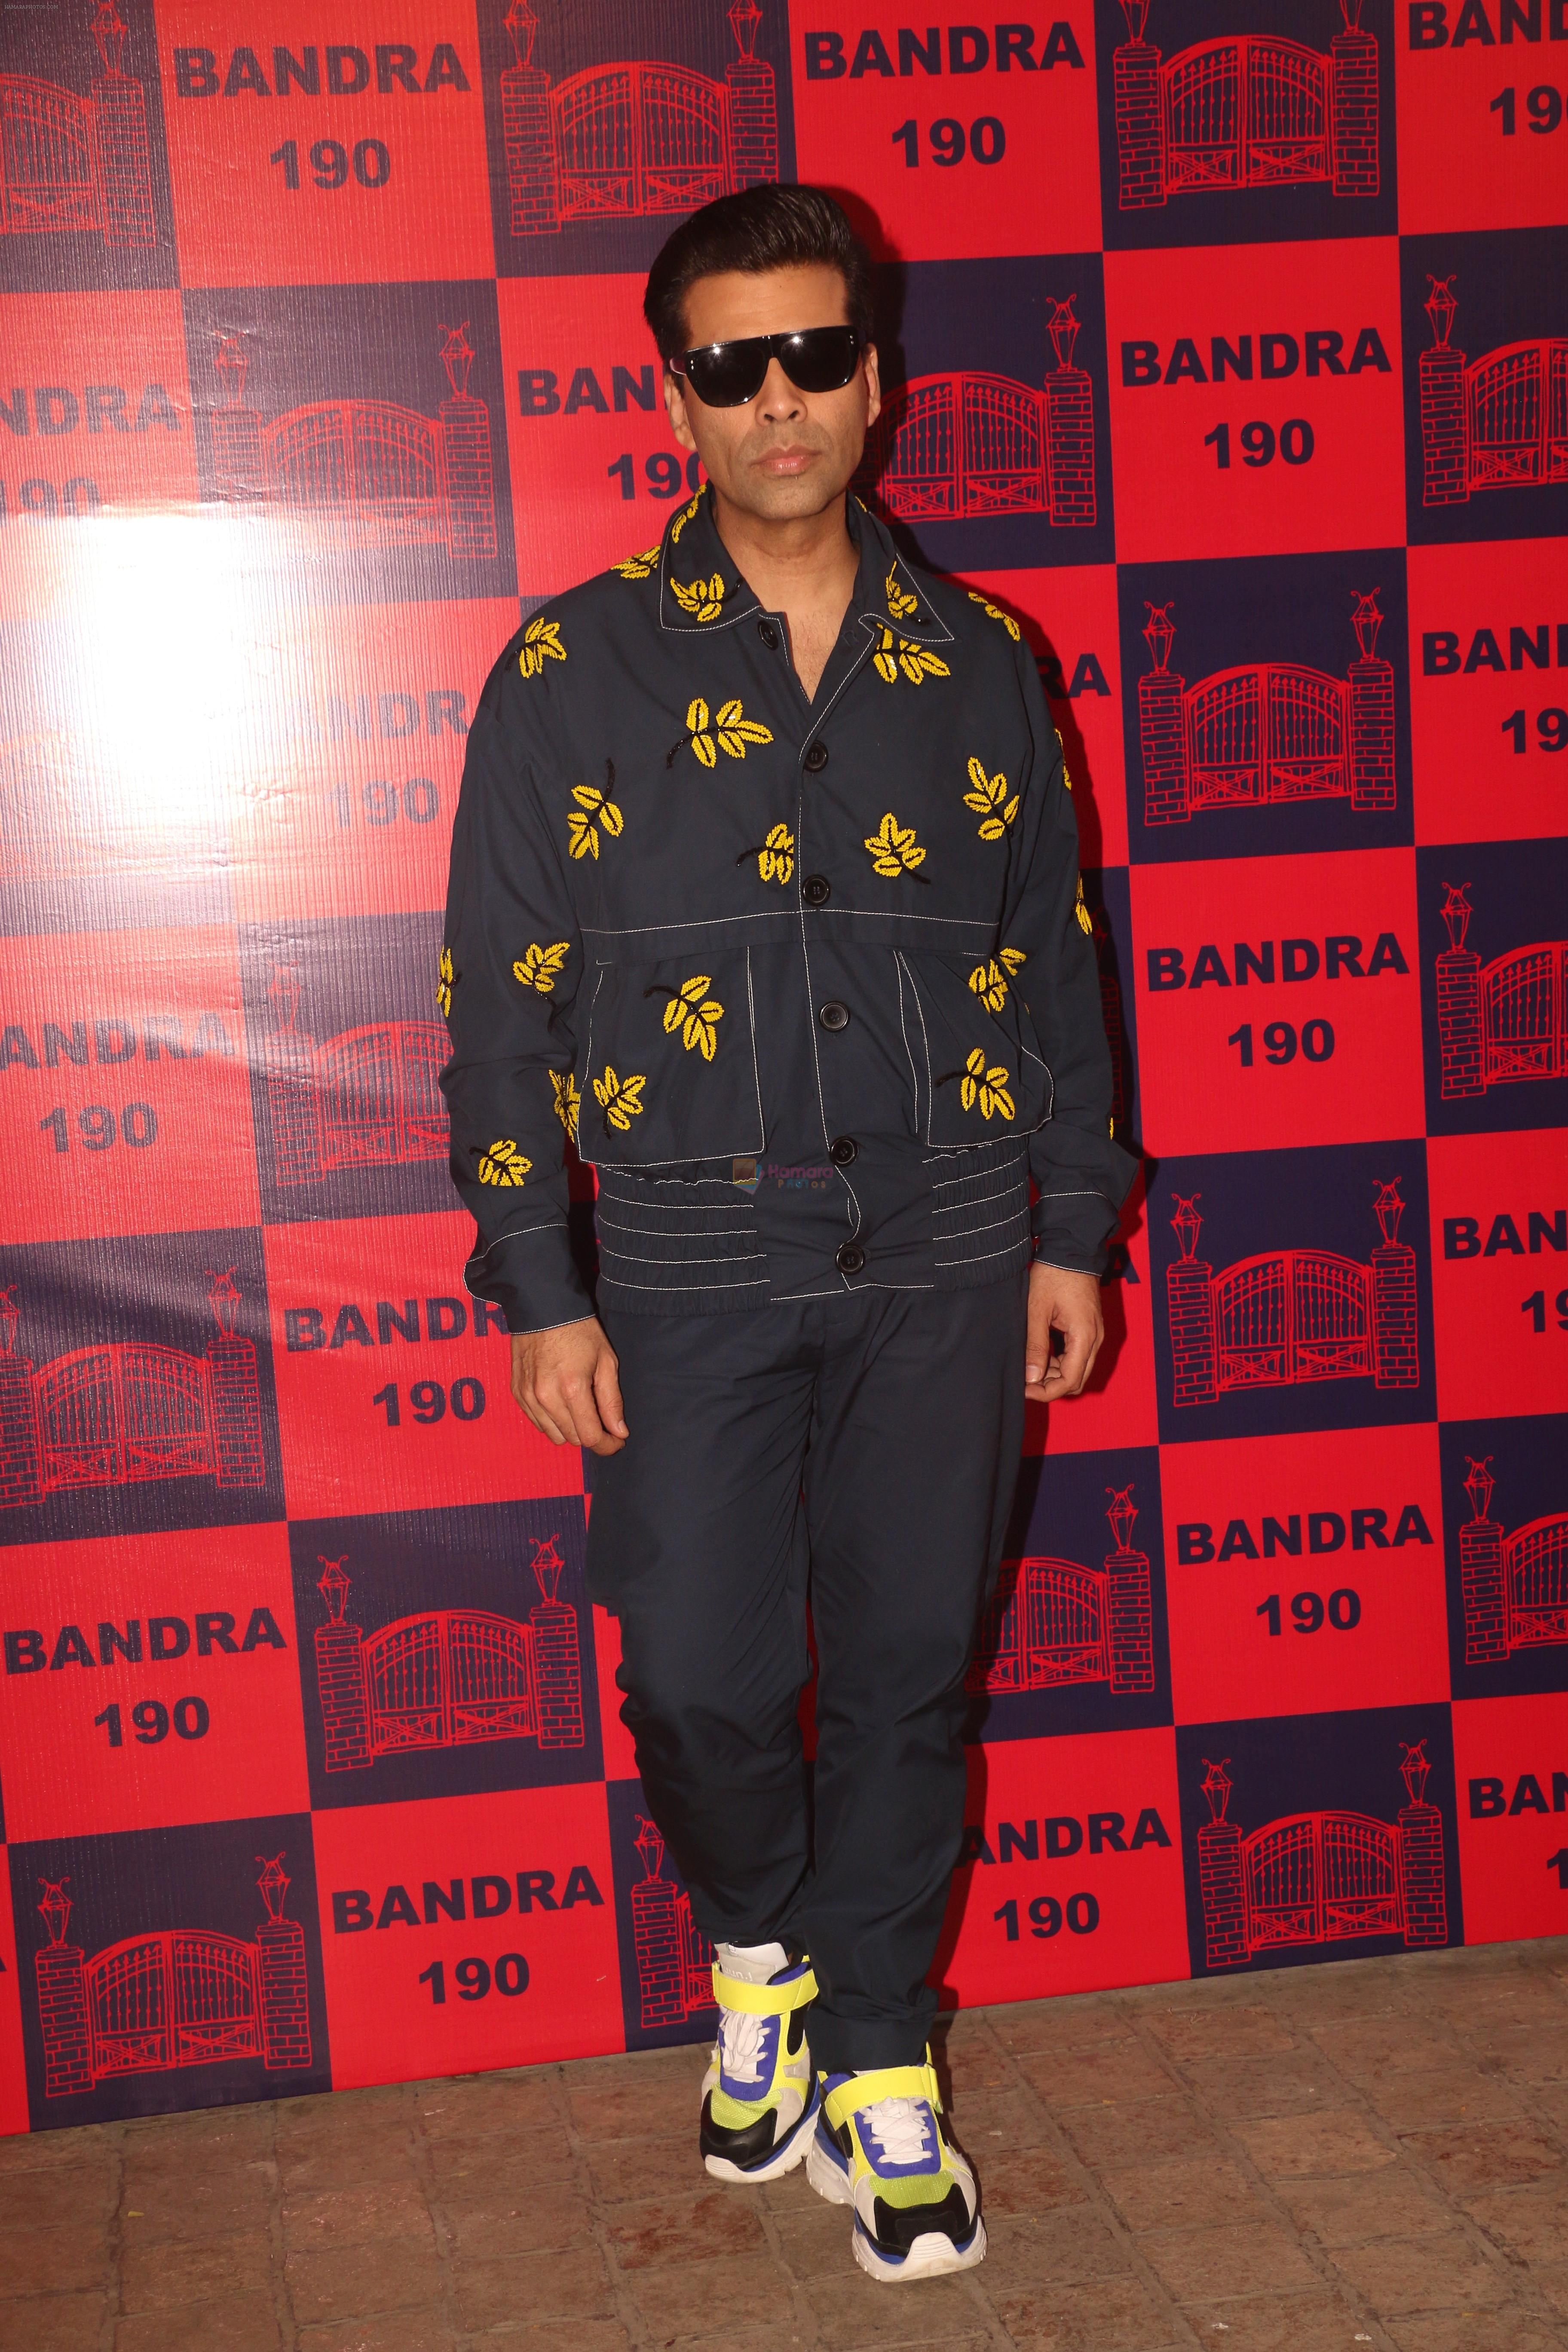 Karan Johar attend a fashion event at Bandra190 on 21st Feb 2019